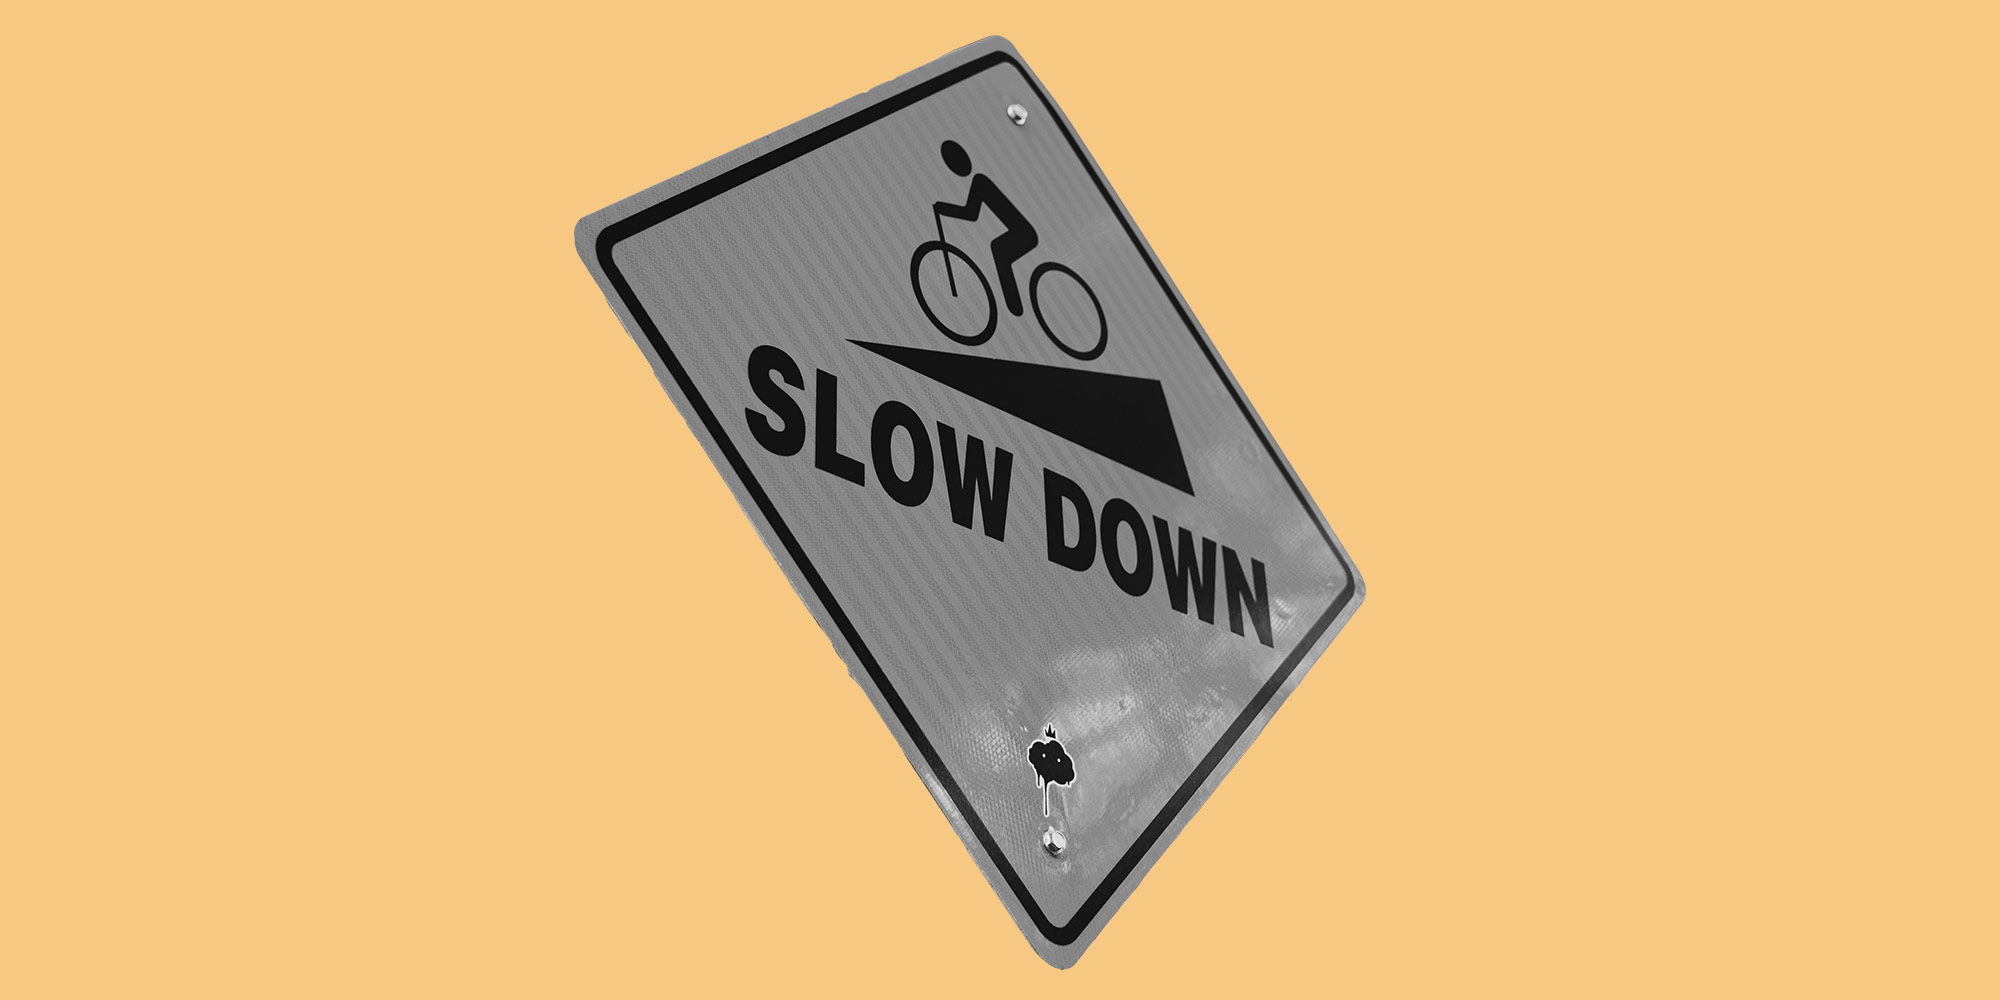 Slow Down sign. Slowbriety